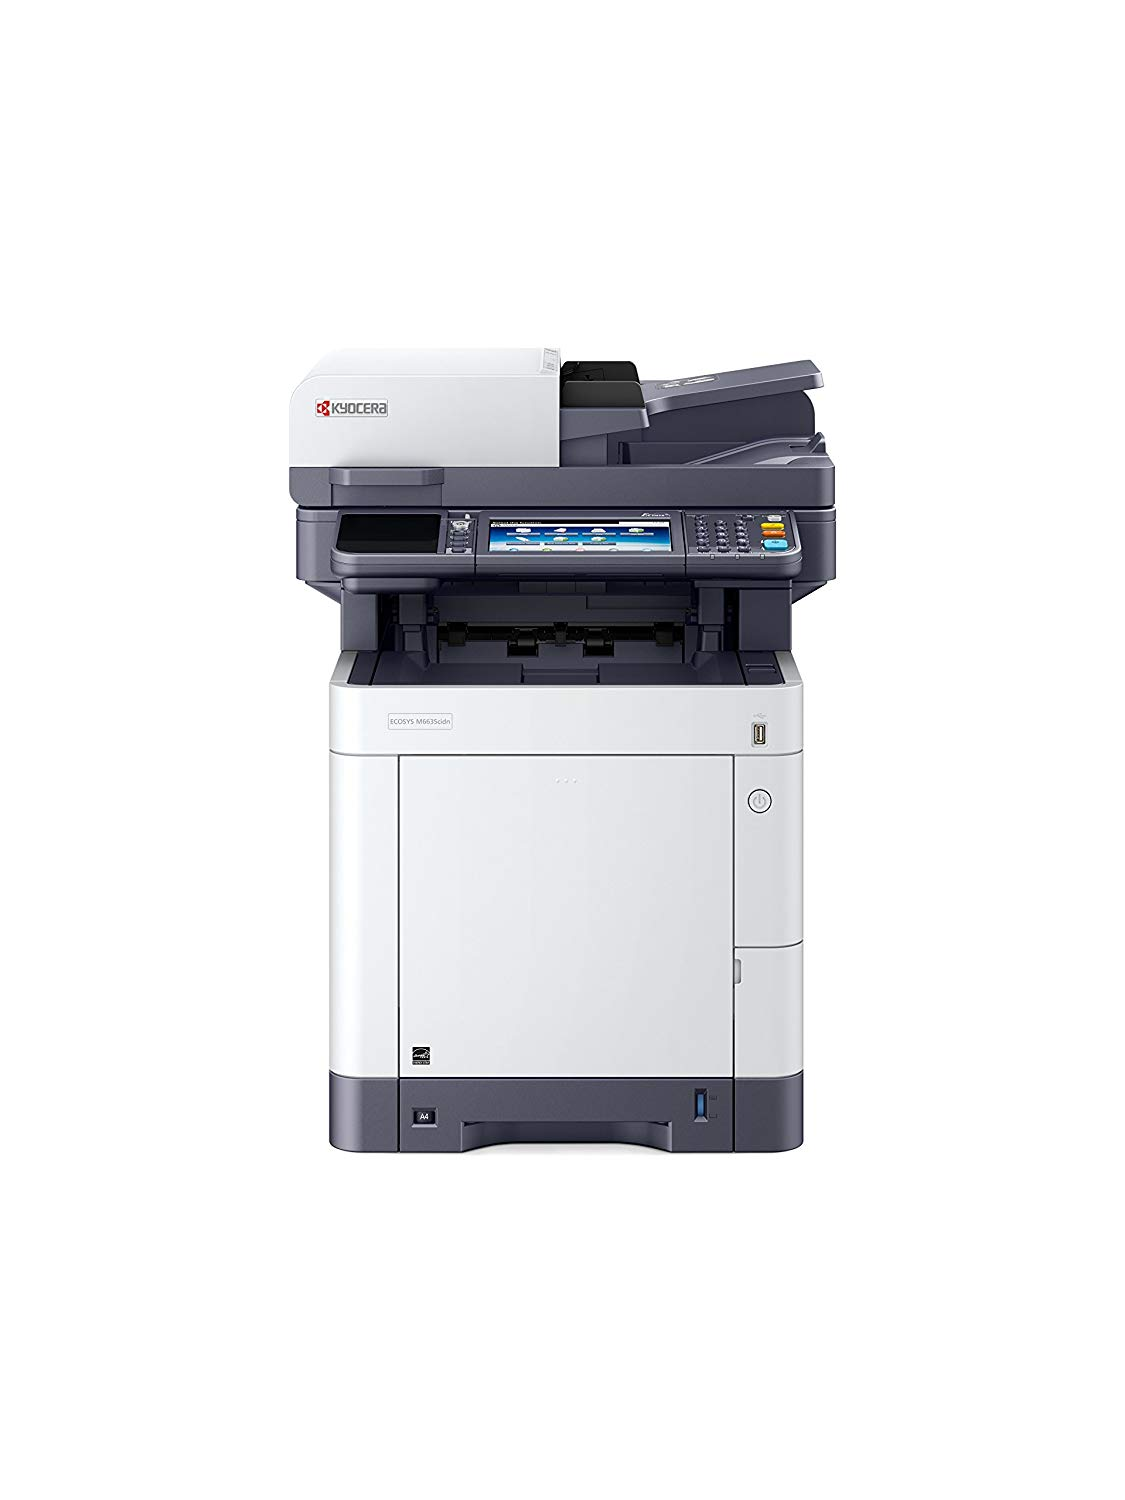 Kyocera M6635cidn colour multifunction